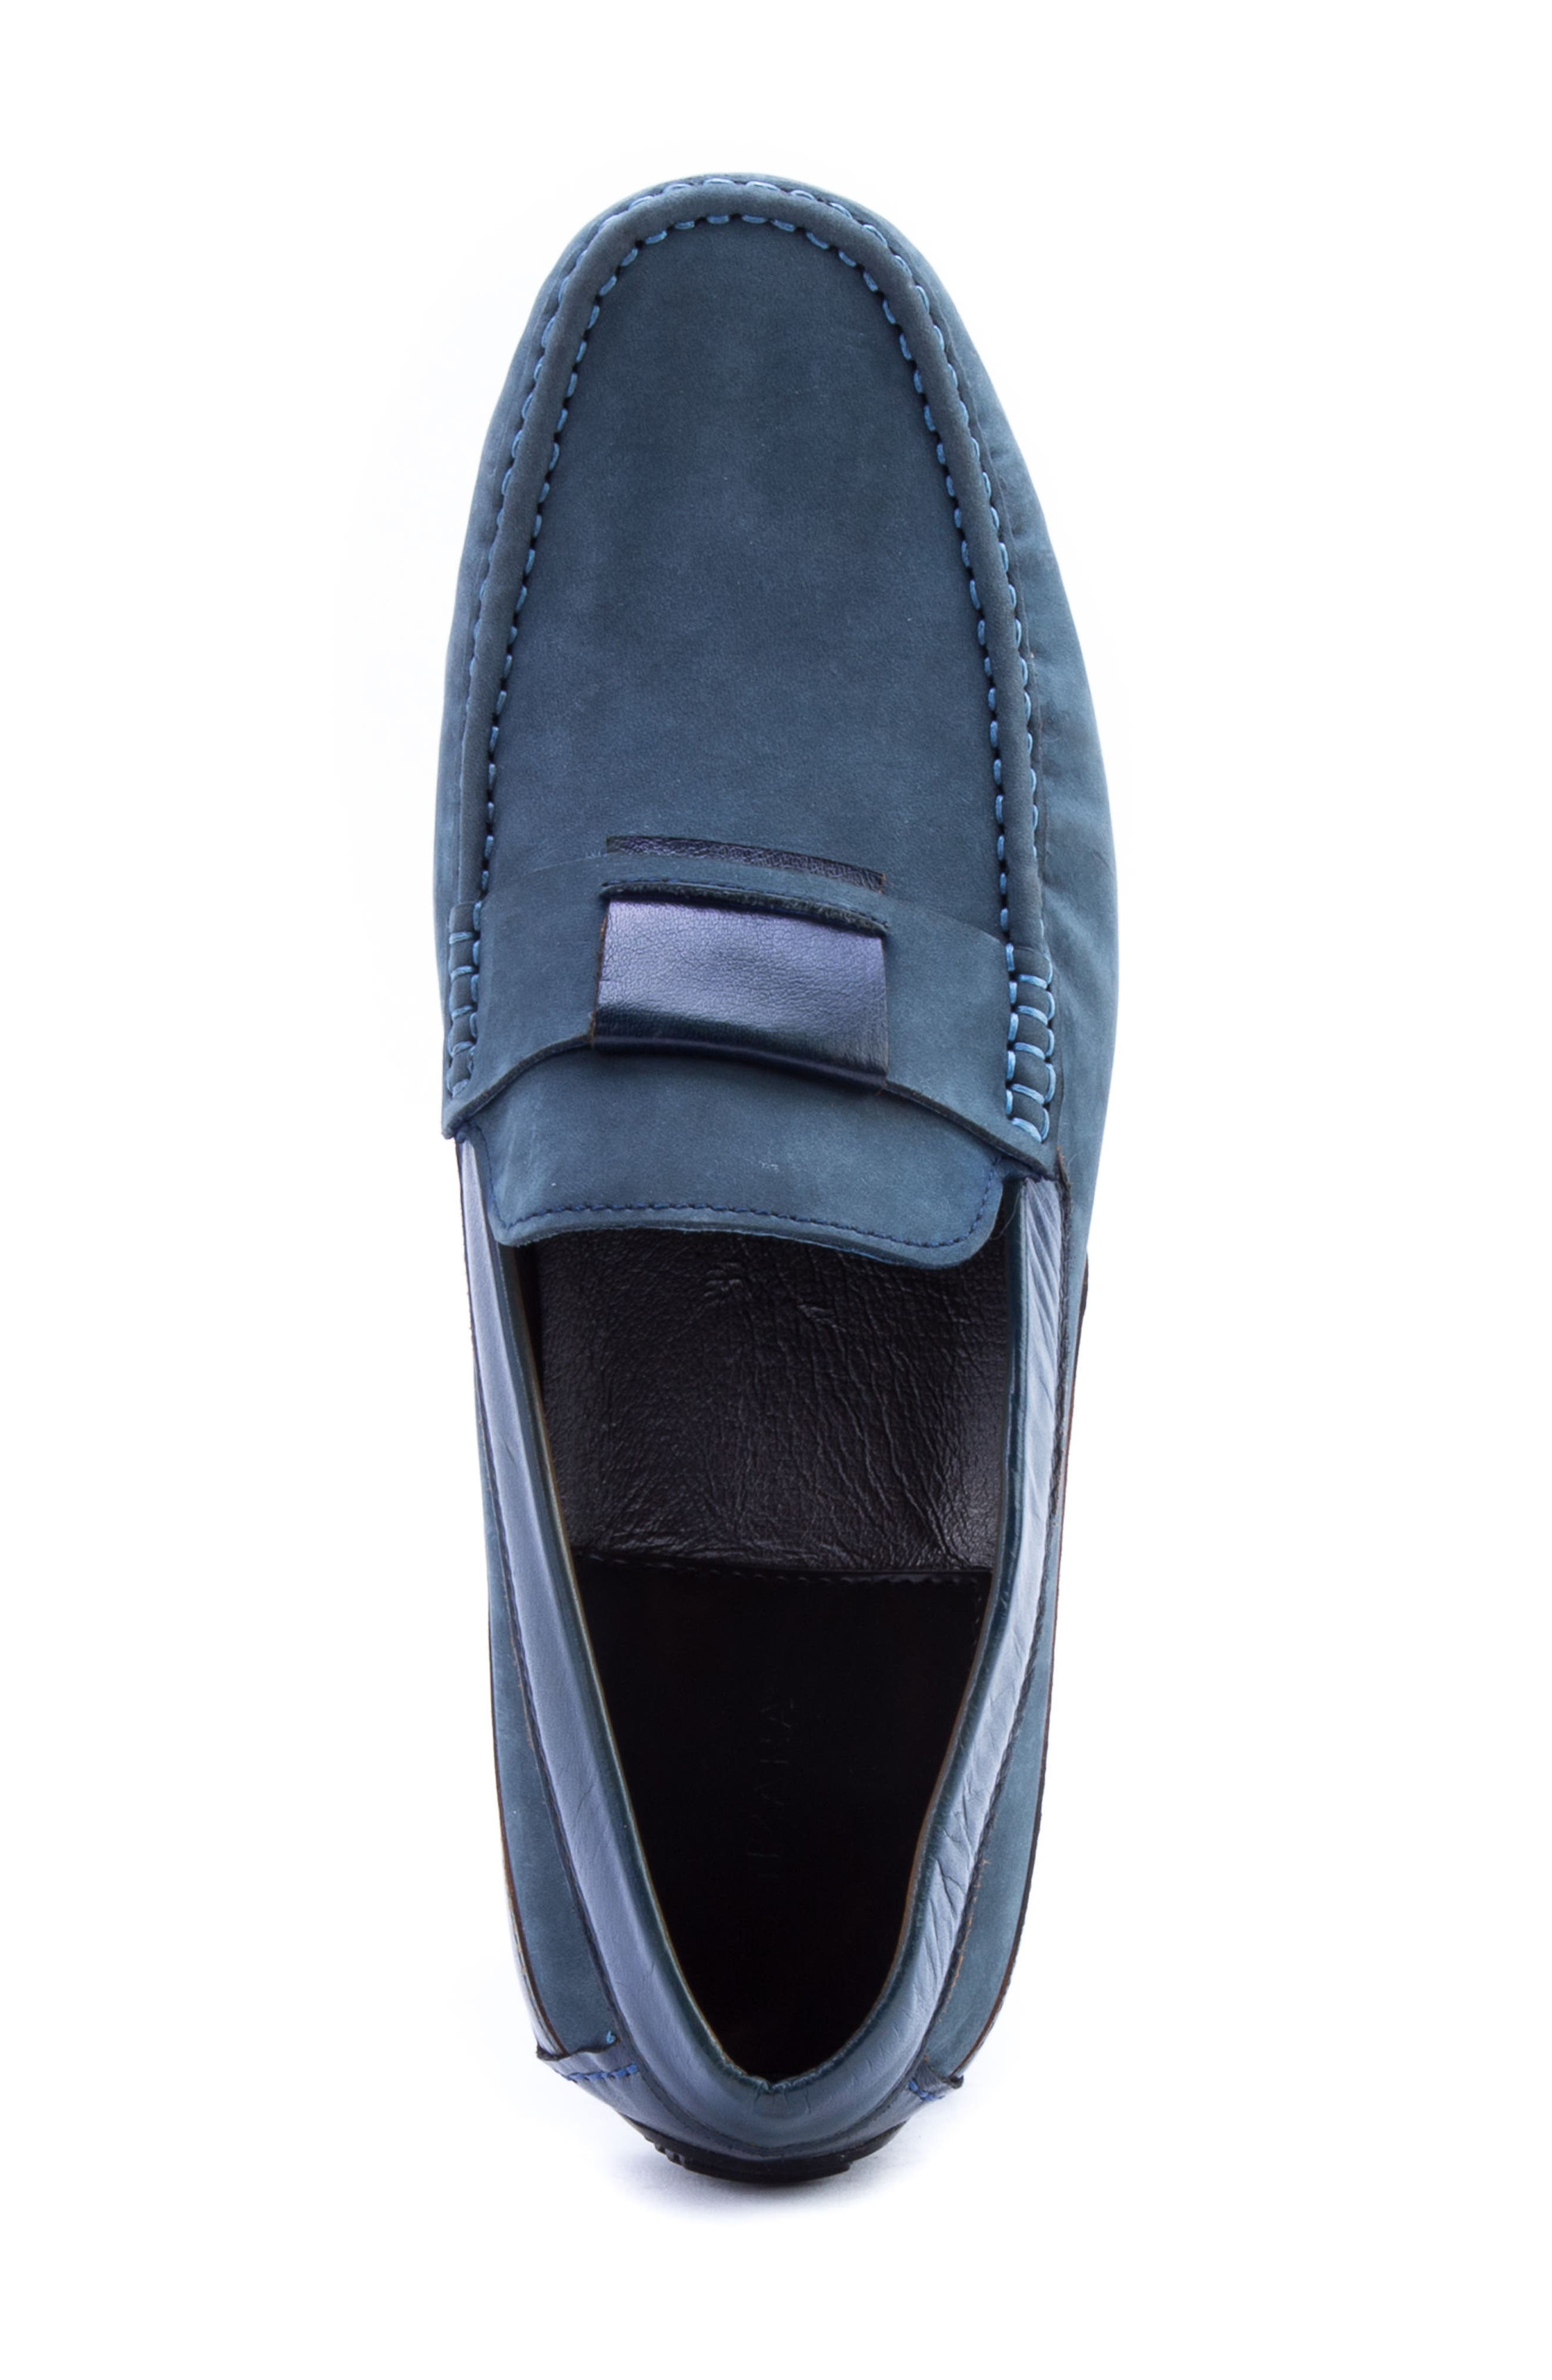 Seurat Driving Loafer,                             Alternate thumbnail 5, color,                             Blue Suede/ Leather